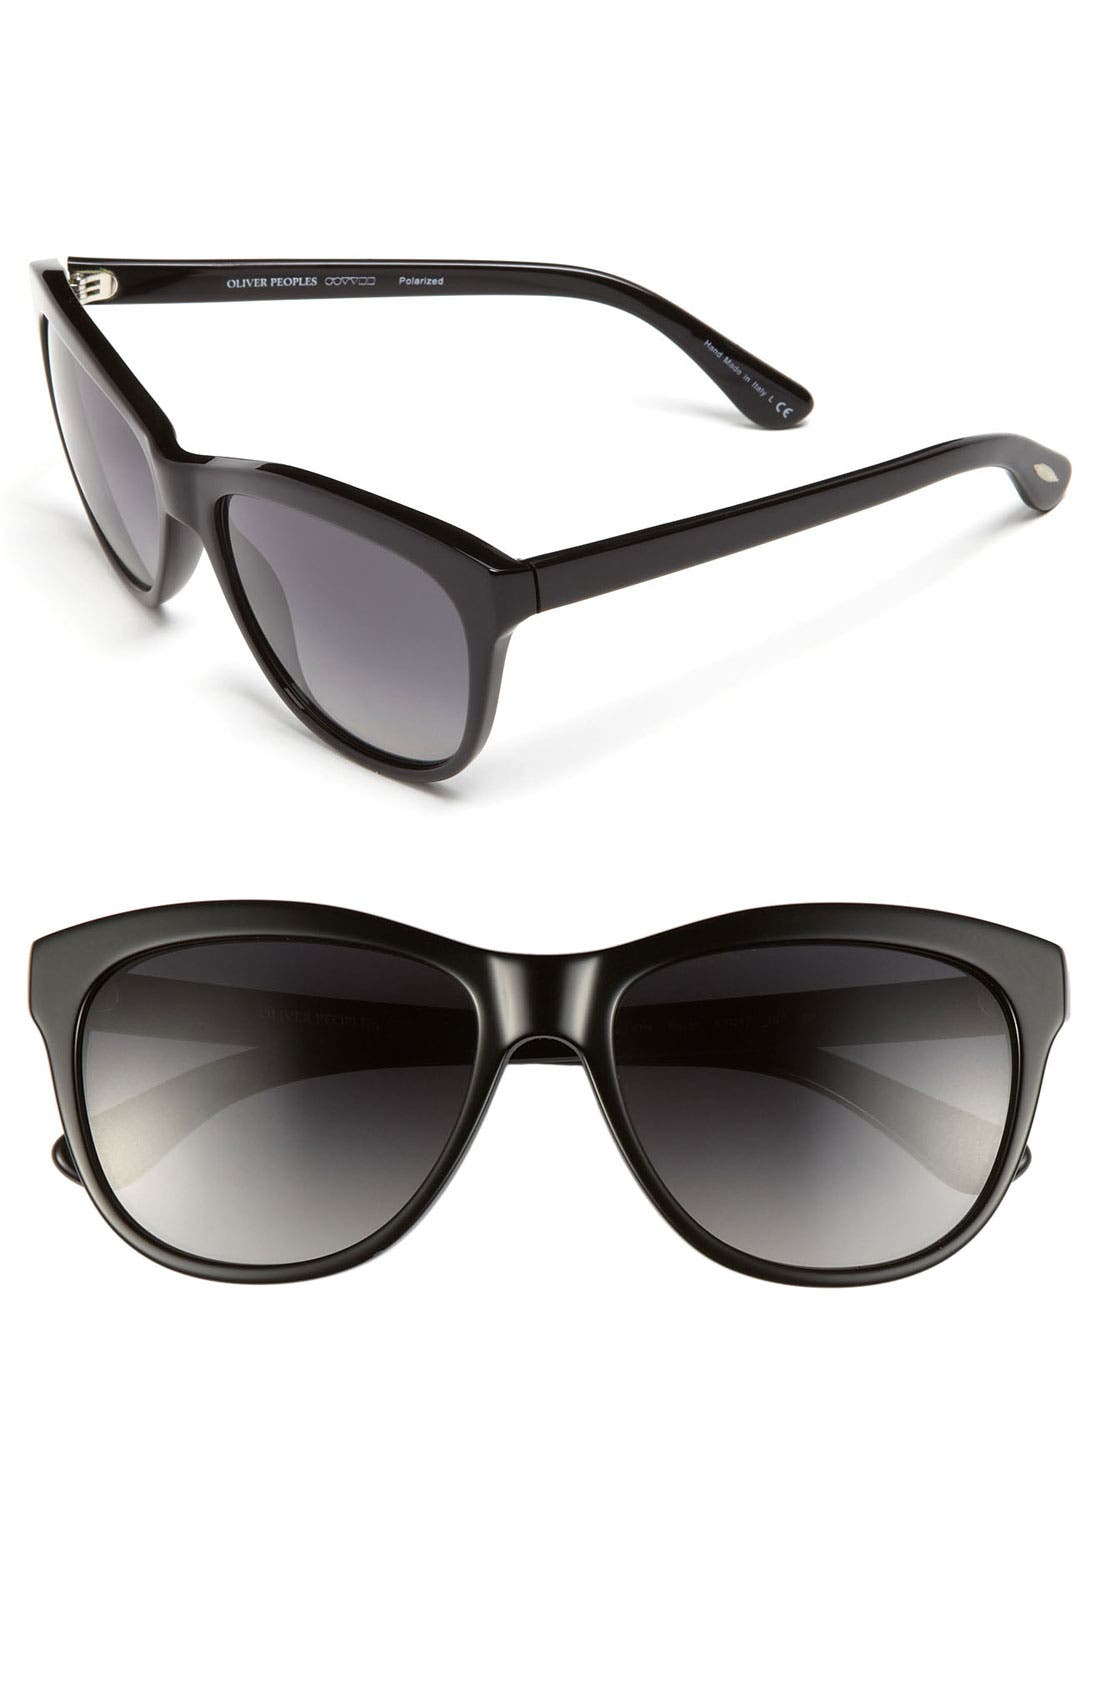 Main Image - Oliver Peoples 'Reigh' 57mm Sunglasses